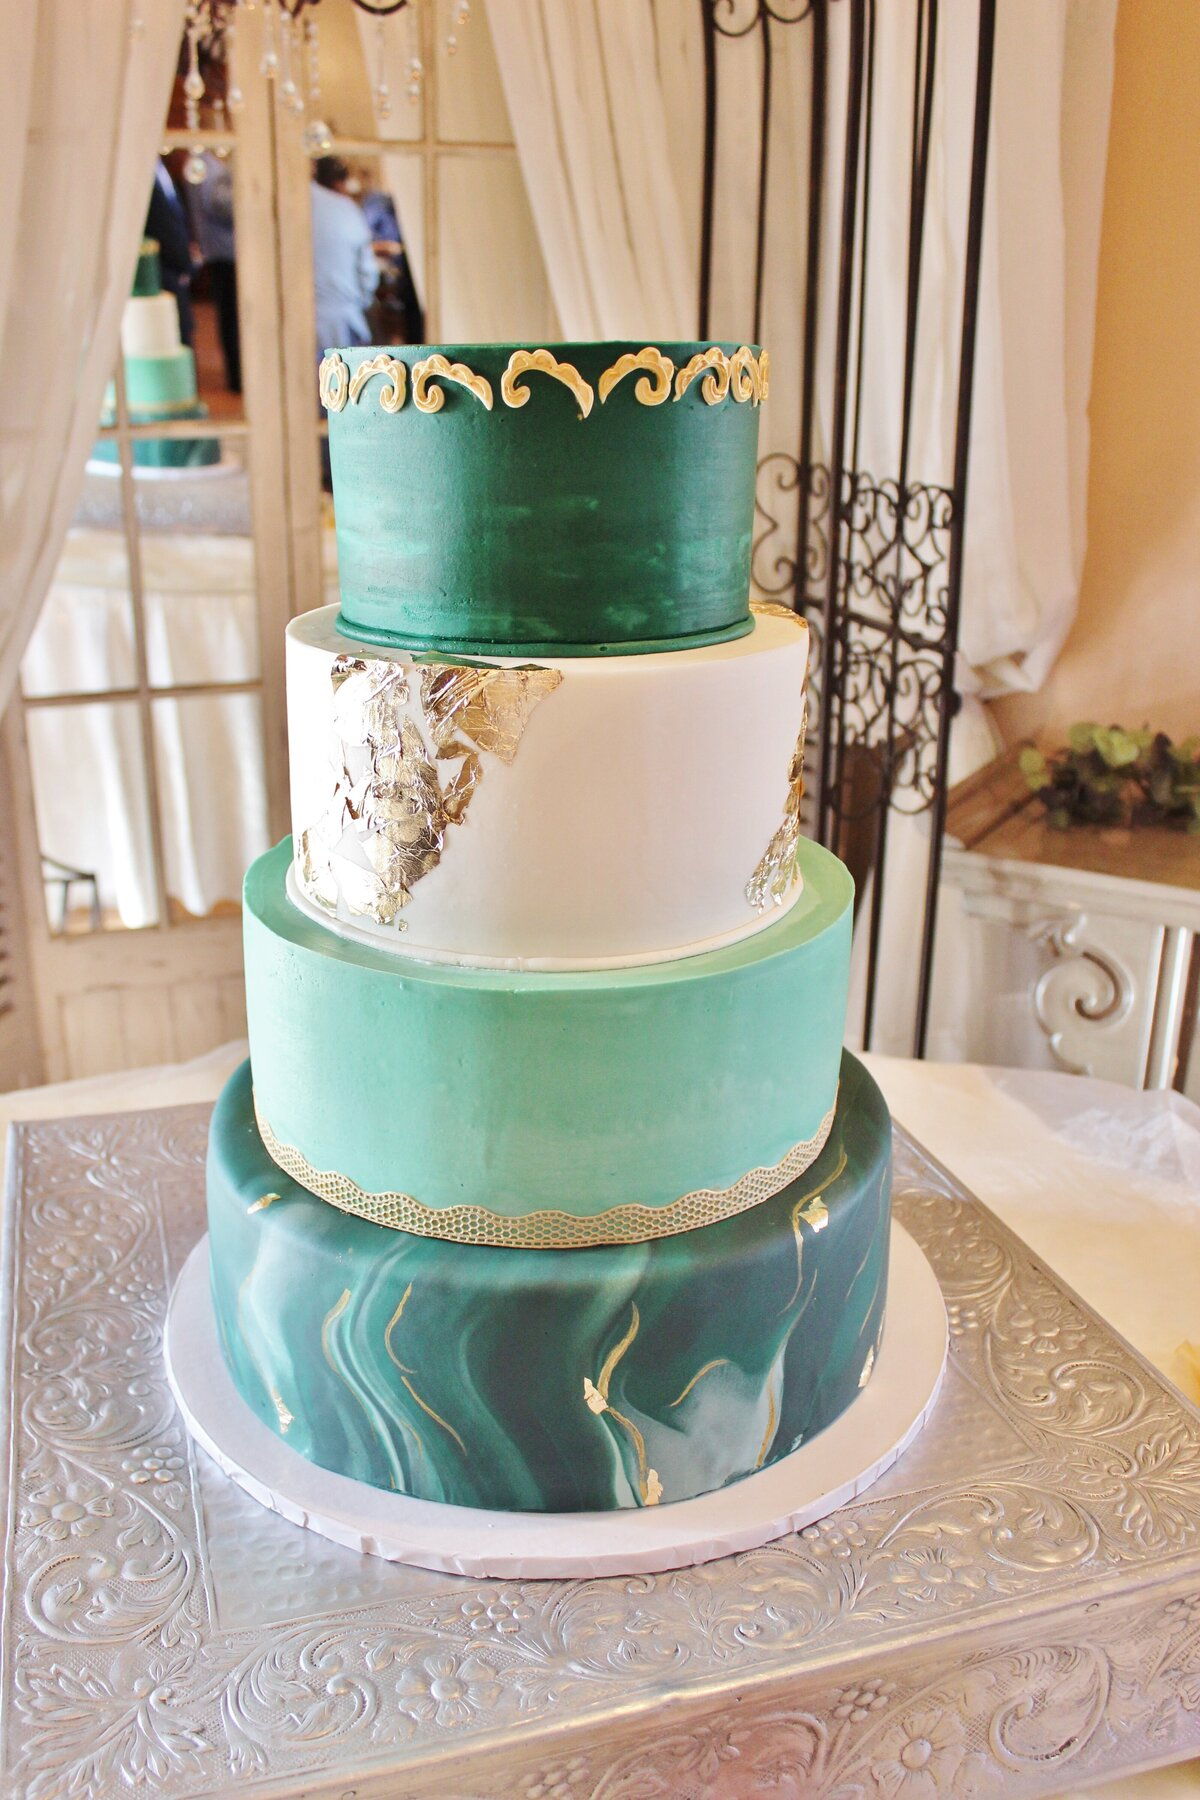 Buttercreamsmooth.fondant.colorfulmetallic.green.ADE